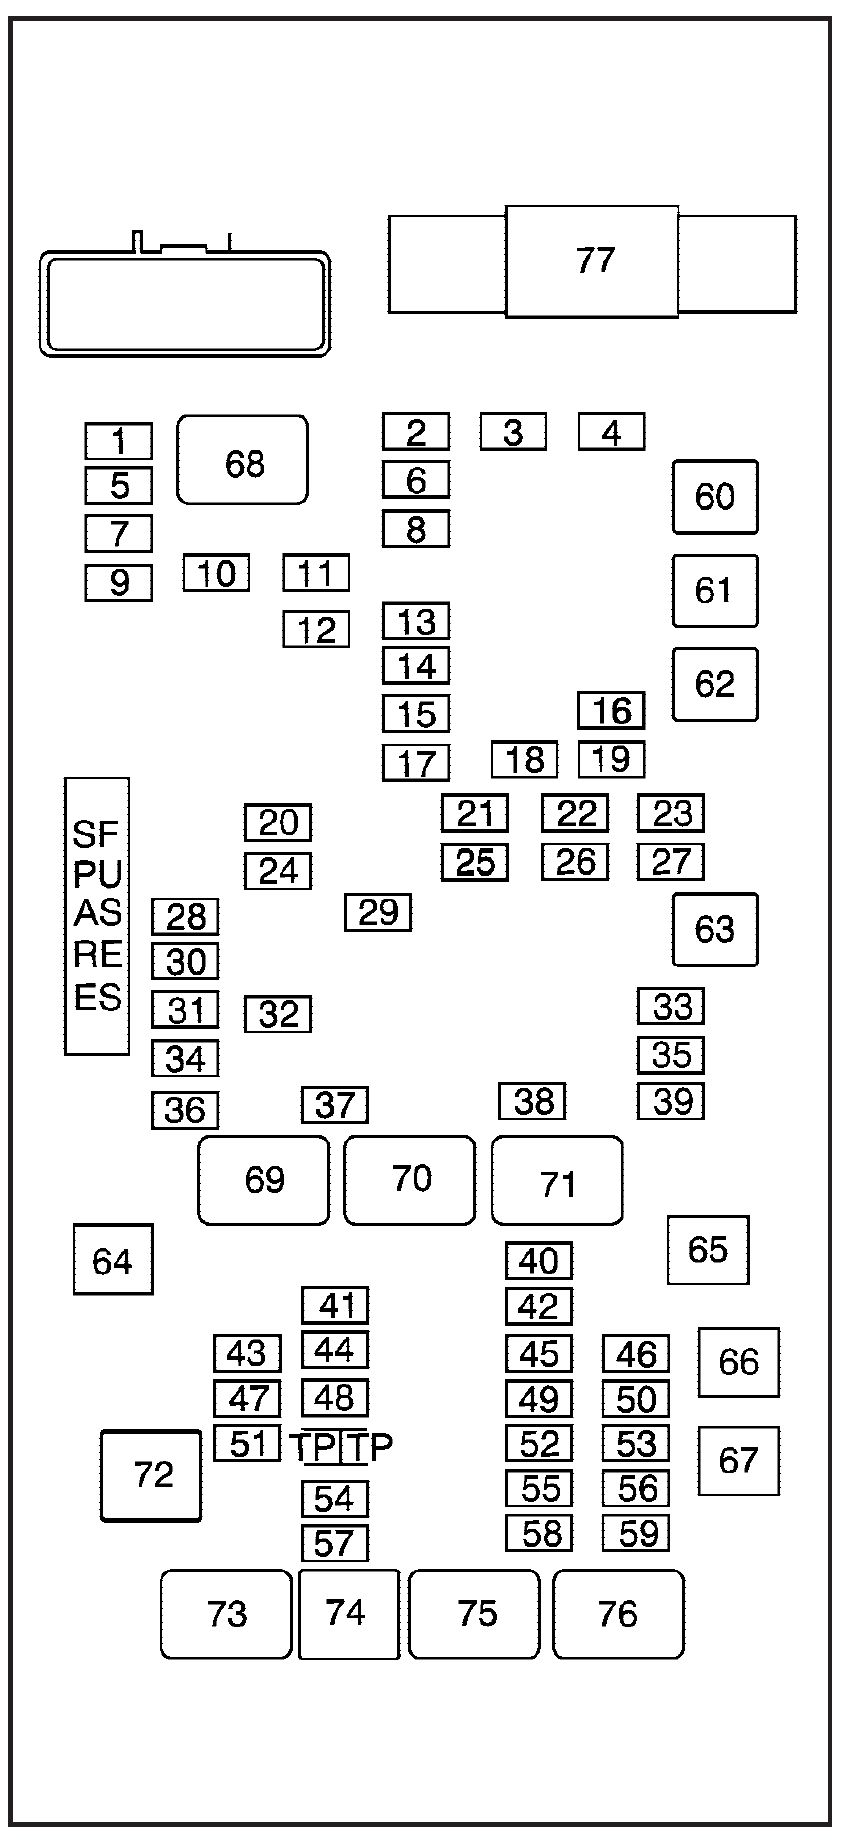 2010 Gmc Terrain Fuse Box Diagram : 33 Wiring Diagram